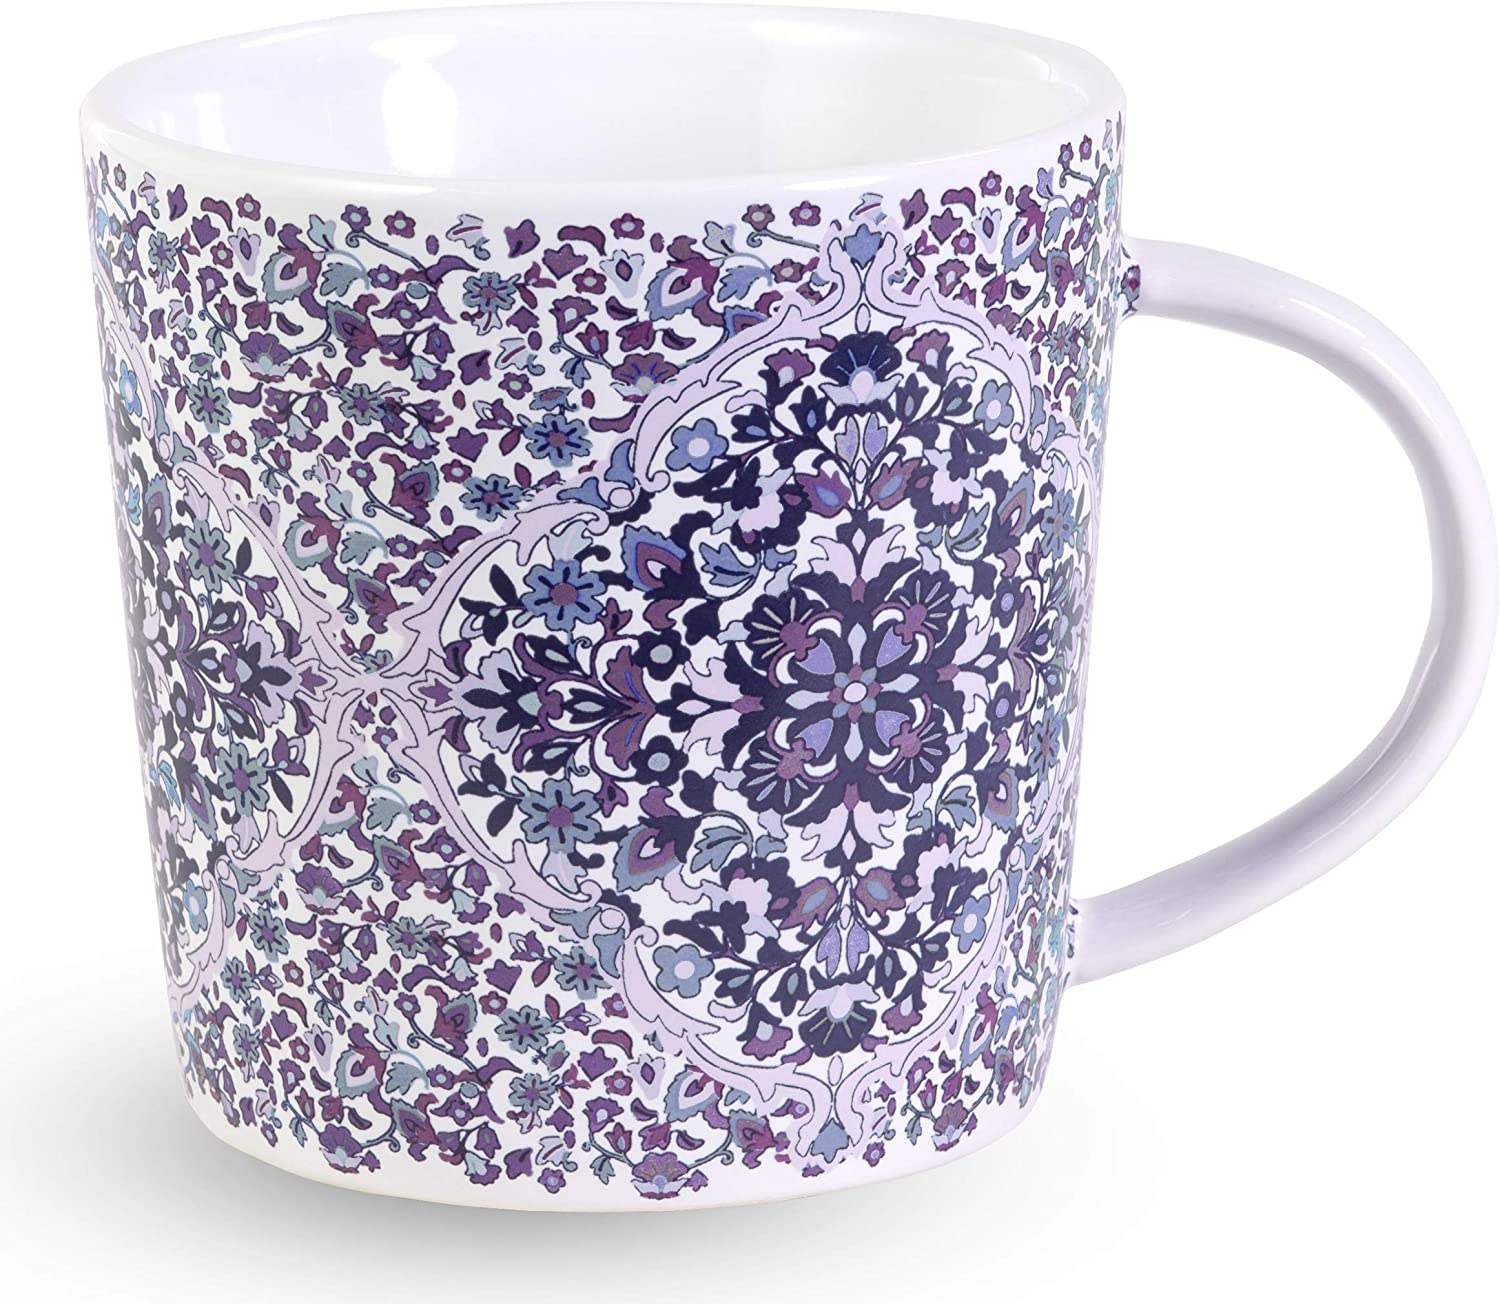 Vera Bradley Purple Floral Ceramic Coffee Mug/Tea Cup, Dishwasher and Microwave Safe, 12 Ounces, Regal Rosette